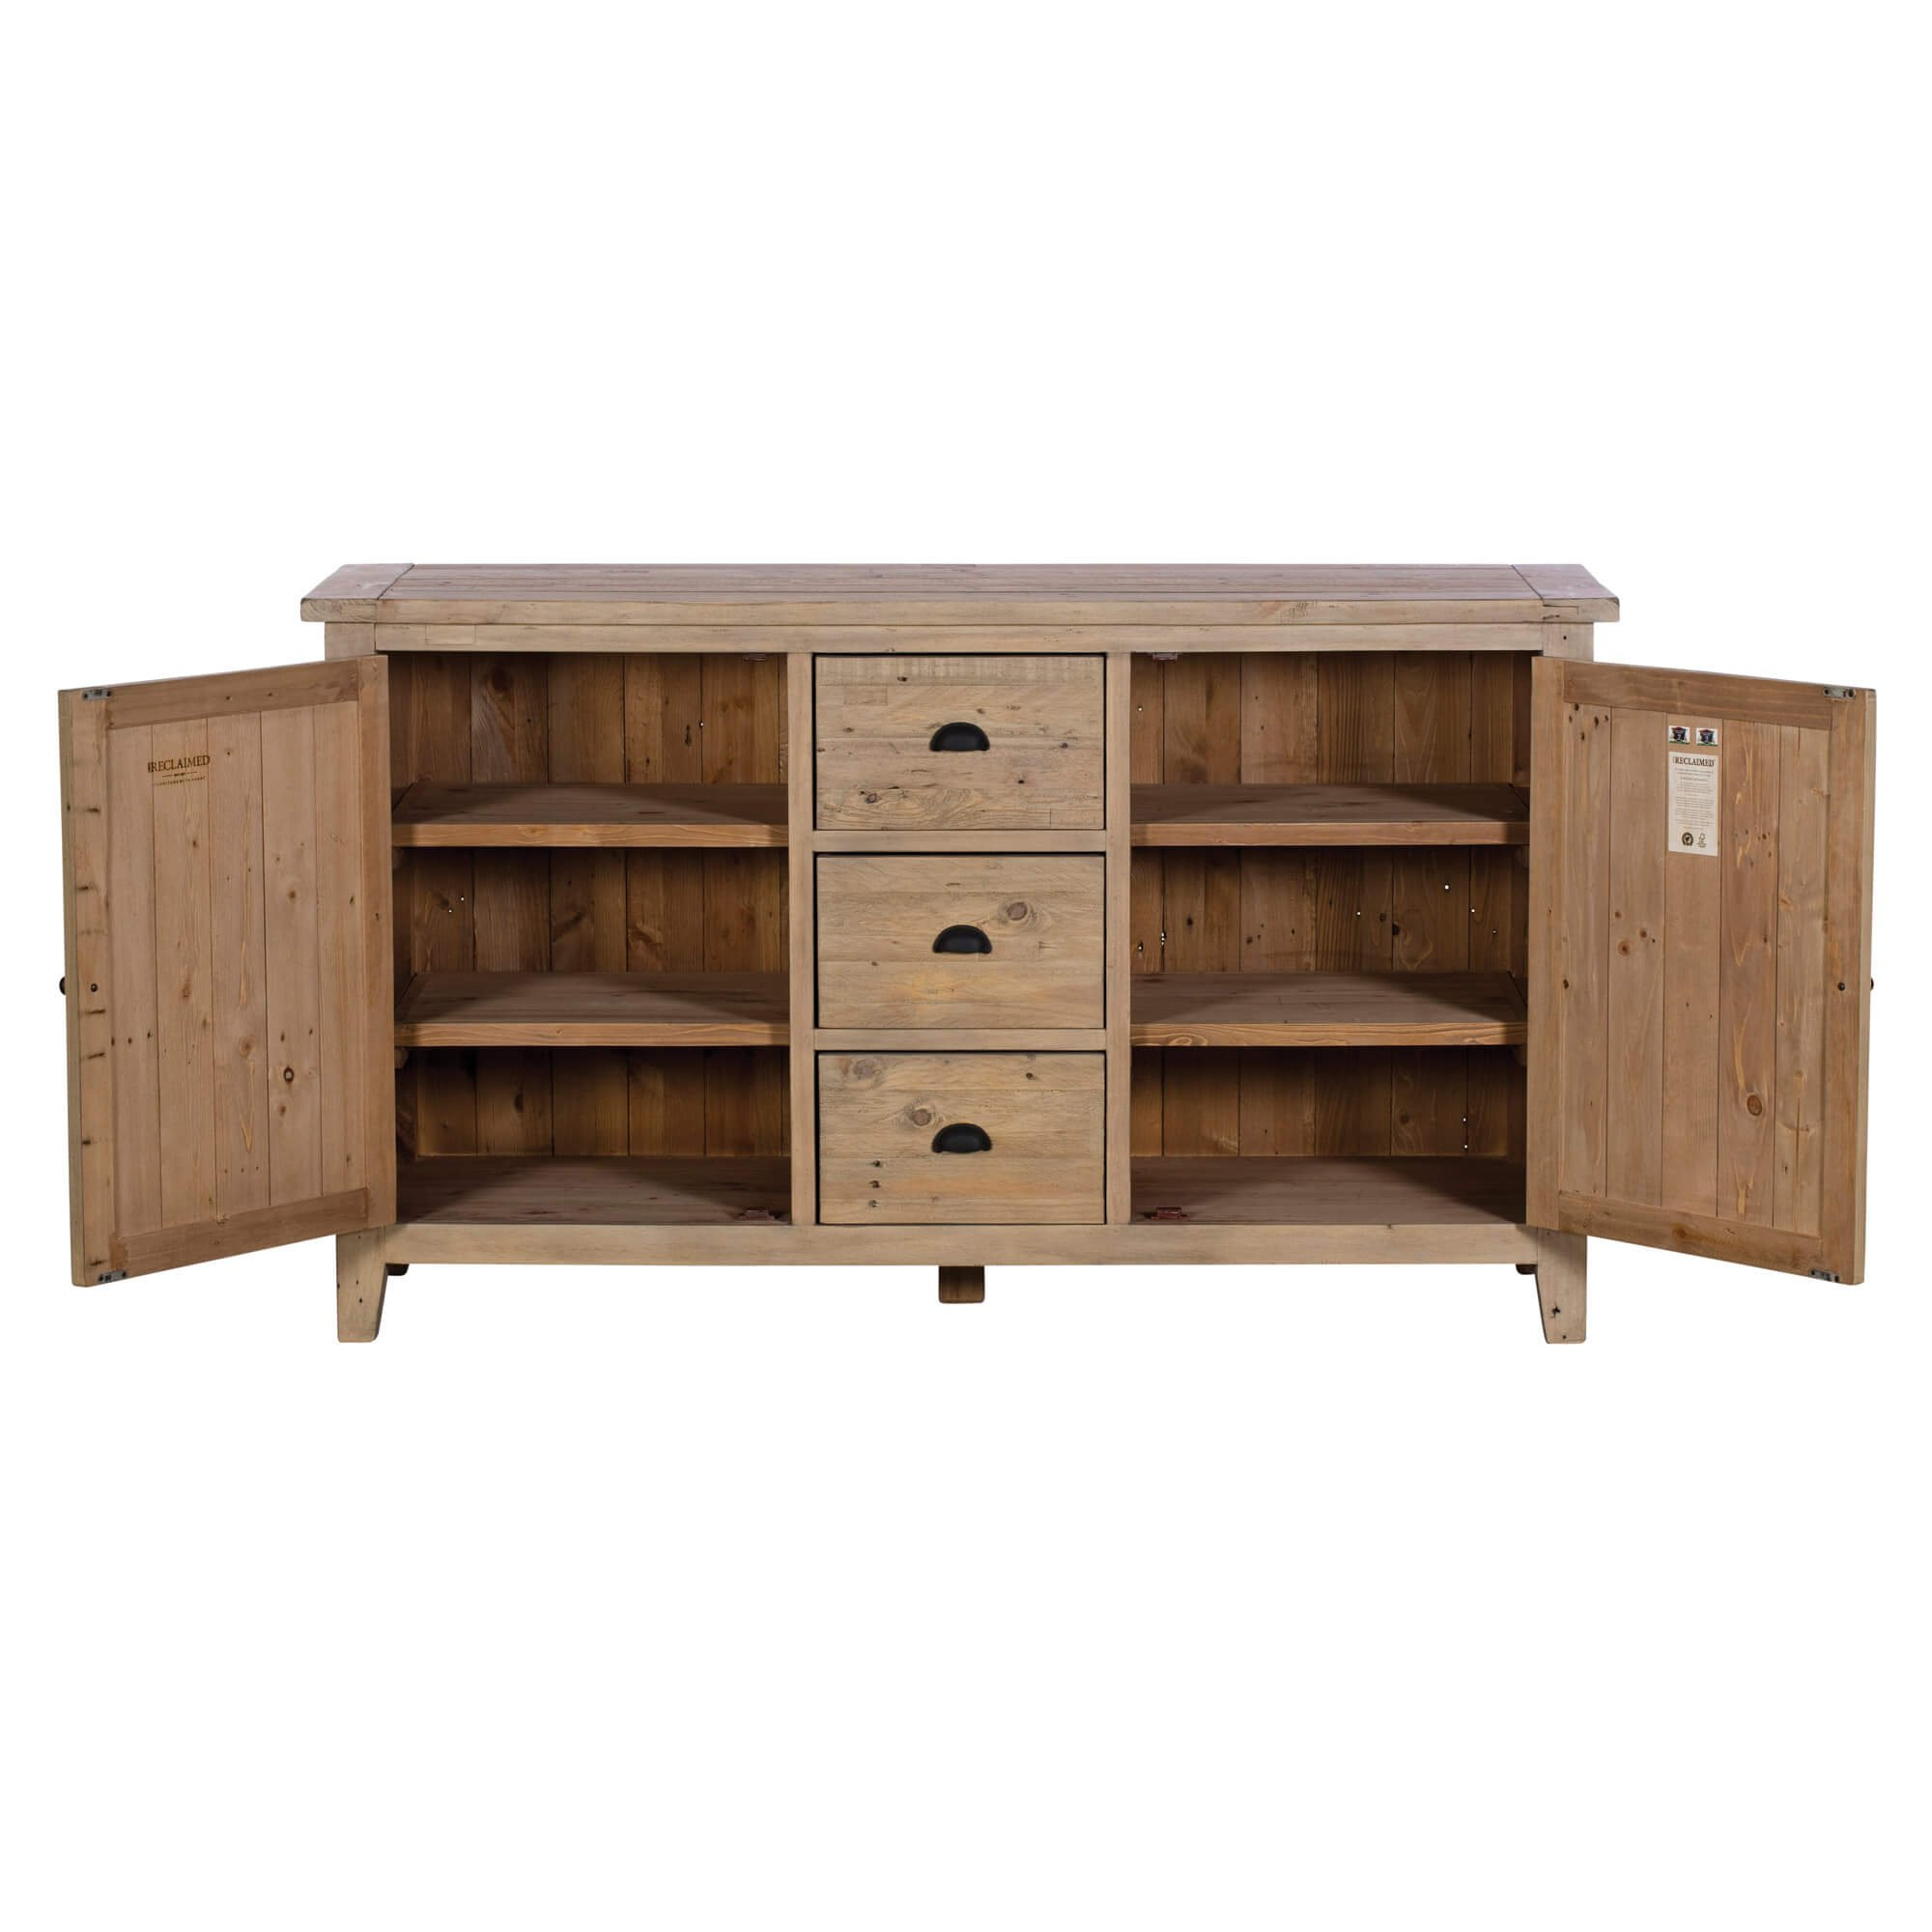 """Vancouver Reclaimed Wood 2 Door 3 Drawer Wide Sideboard Pertaining To Albright 58"""" Wide 3 Drawer Sideboards (View 10 of 15)"""